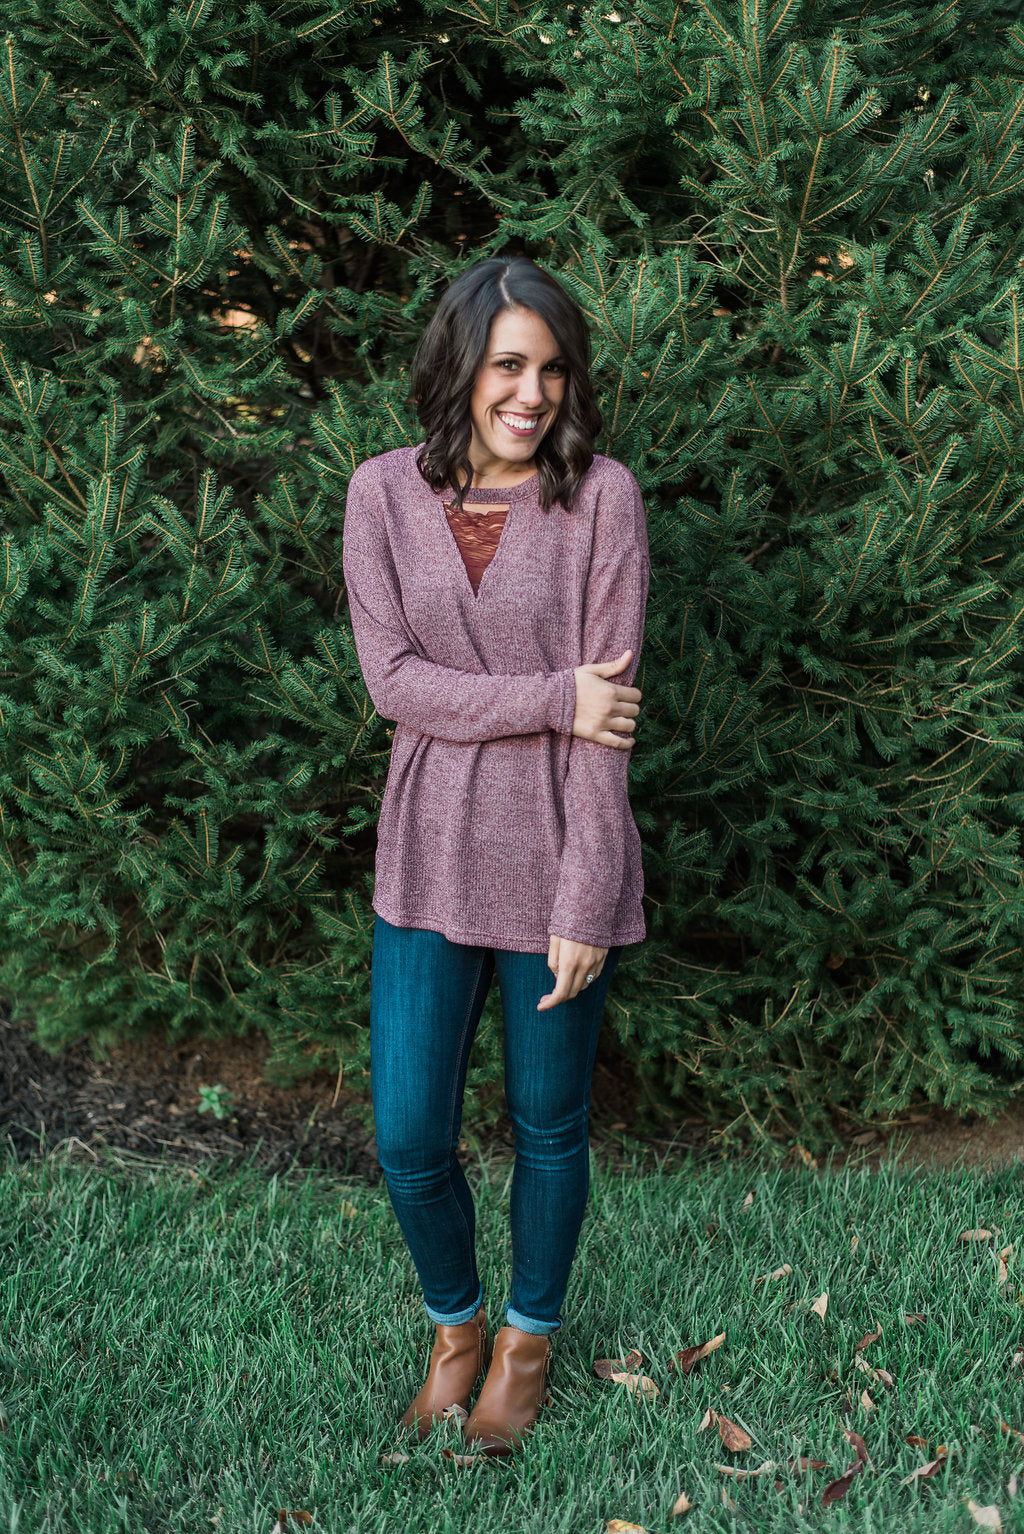 Cranberry, keyhole front neckline, lightweight sweater - Kinsley sweater